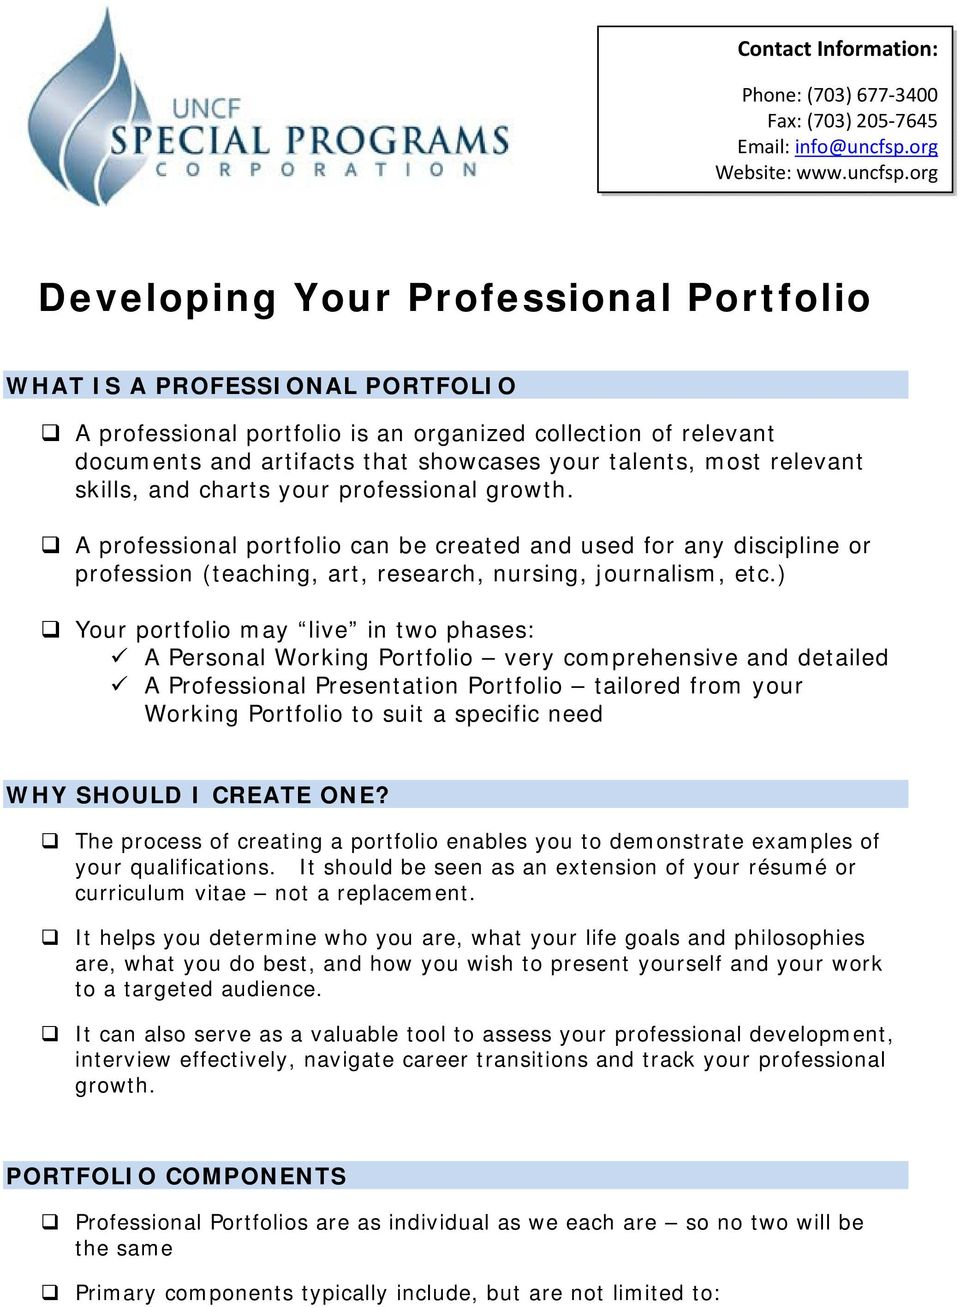 rg Develping Yur Prfessinal Prtfli WHAT IS A PROFESSIONAL PORTFOLIO A prfessinal prtfli is an rganized cllectin f relevant dcuments and artifacts that shwcases yur talents, mst relevant skills, and